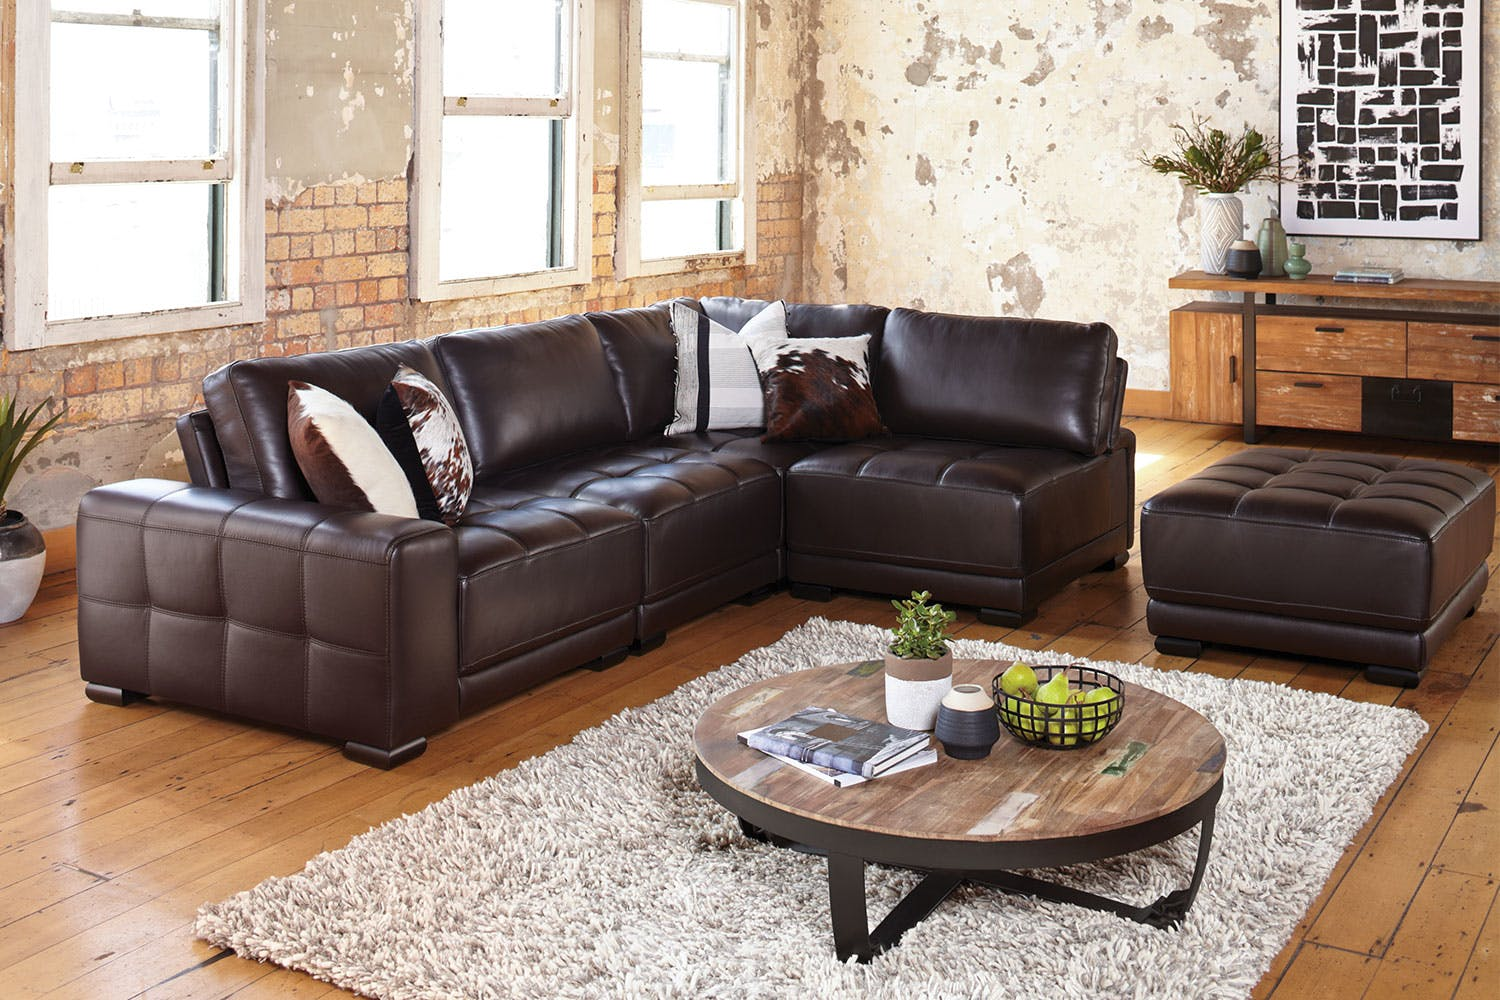 Bari Leather Modular Lounge Suite By Garry Masters Harvey Norman New Zealand